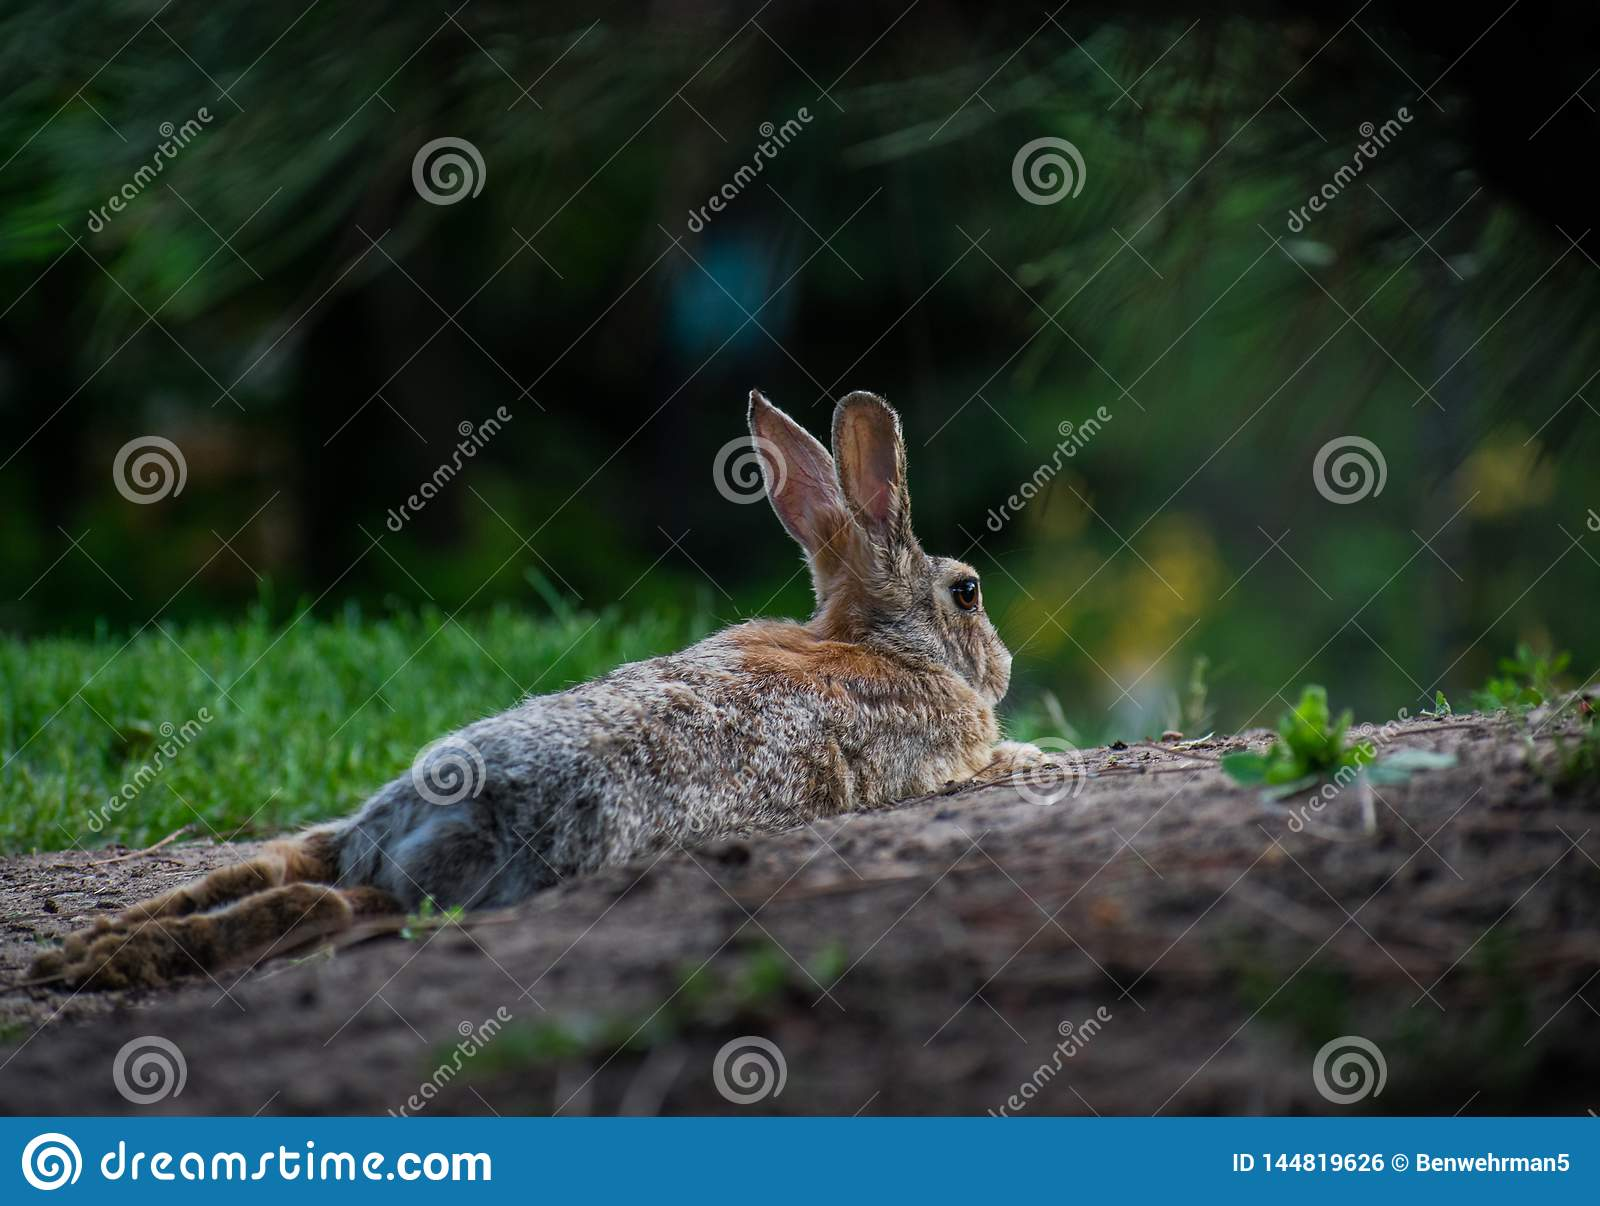 Rabbit Laying Down in the Dirt